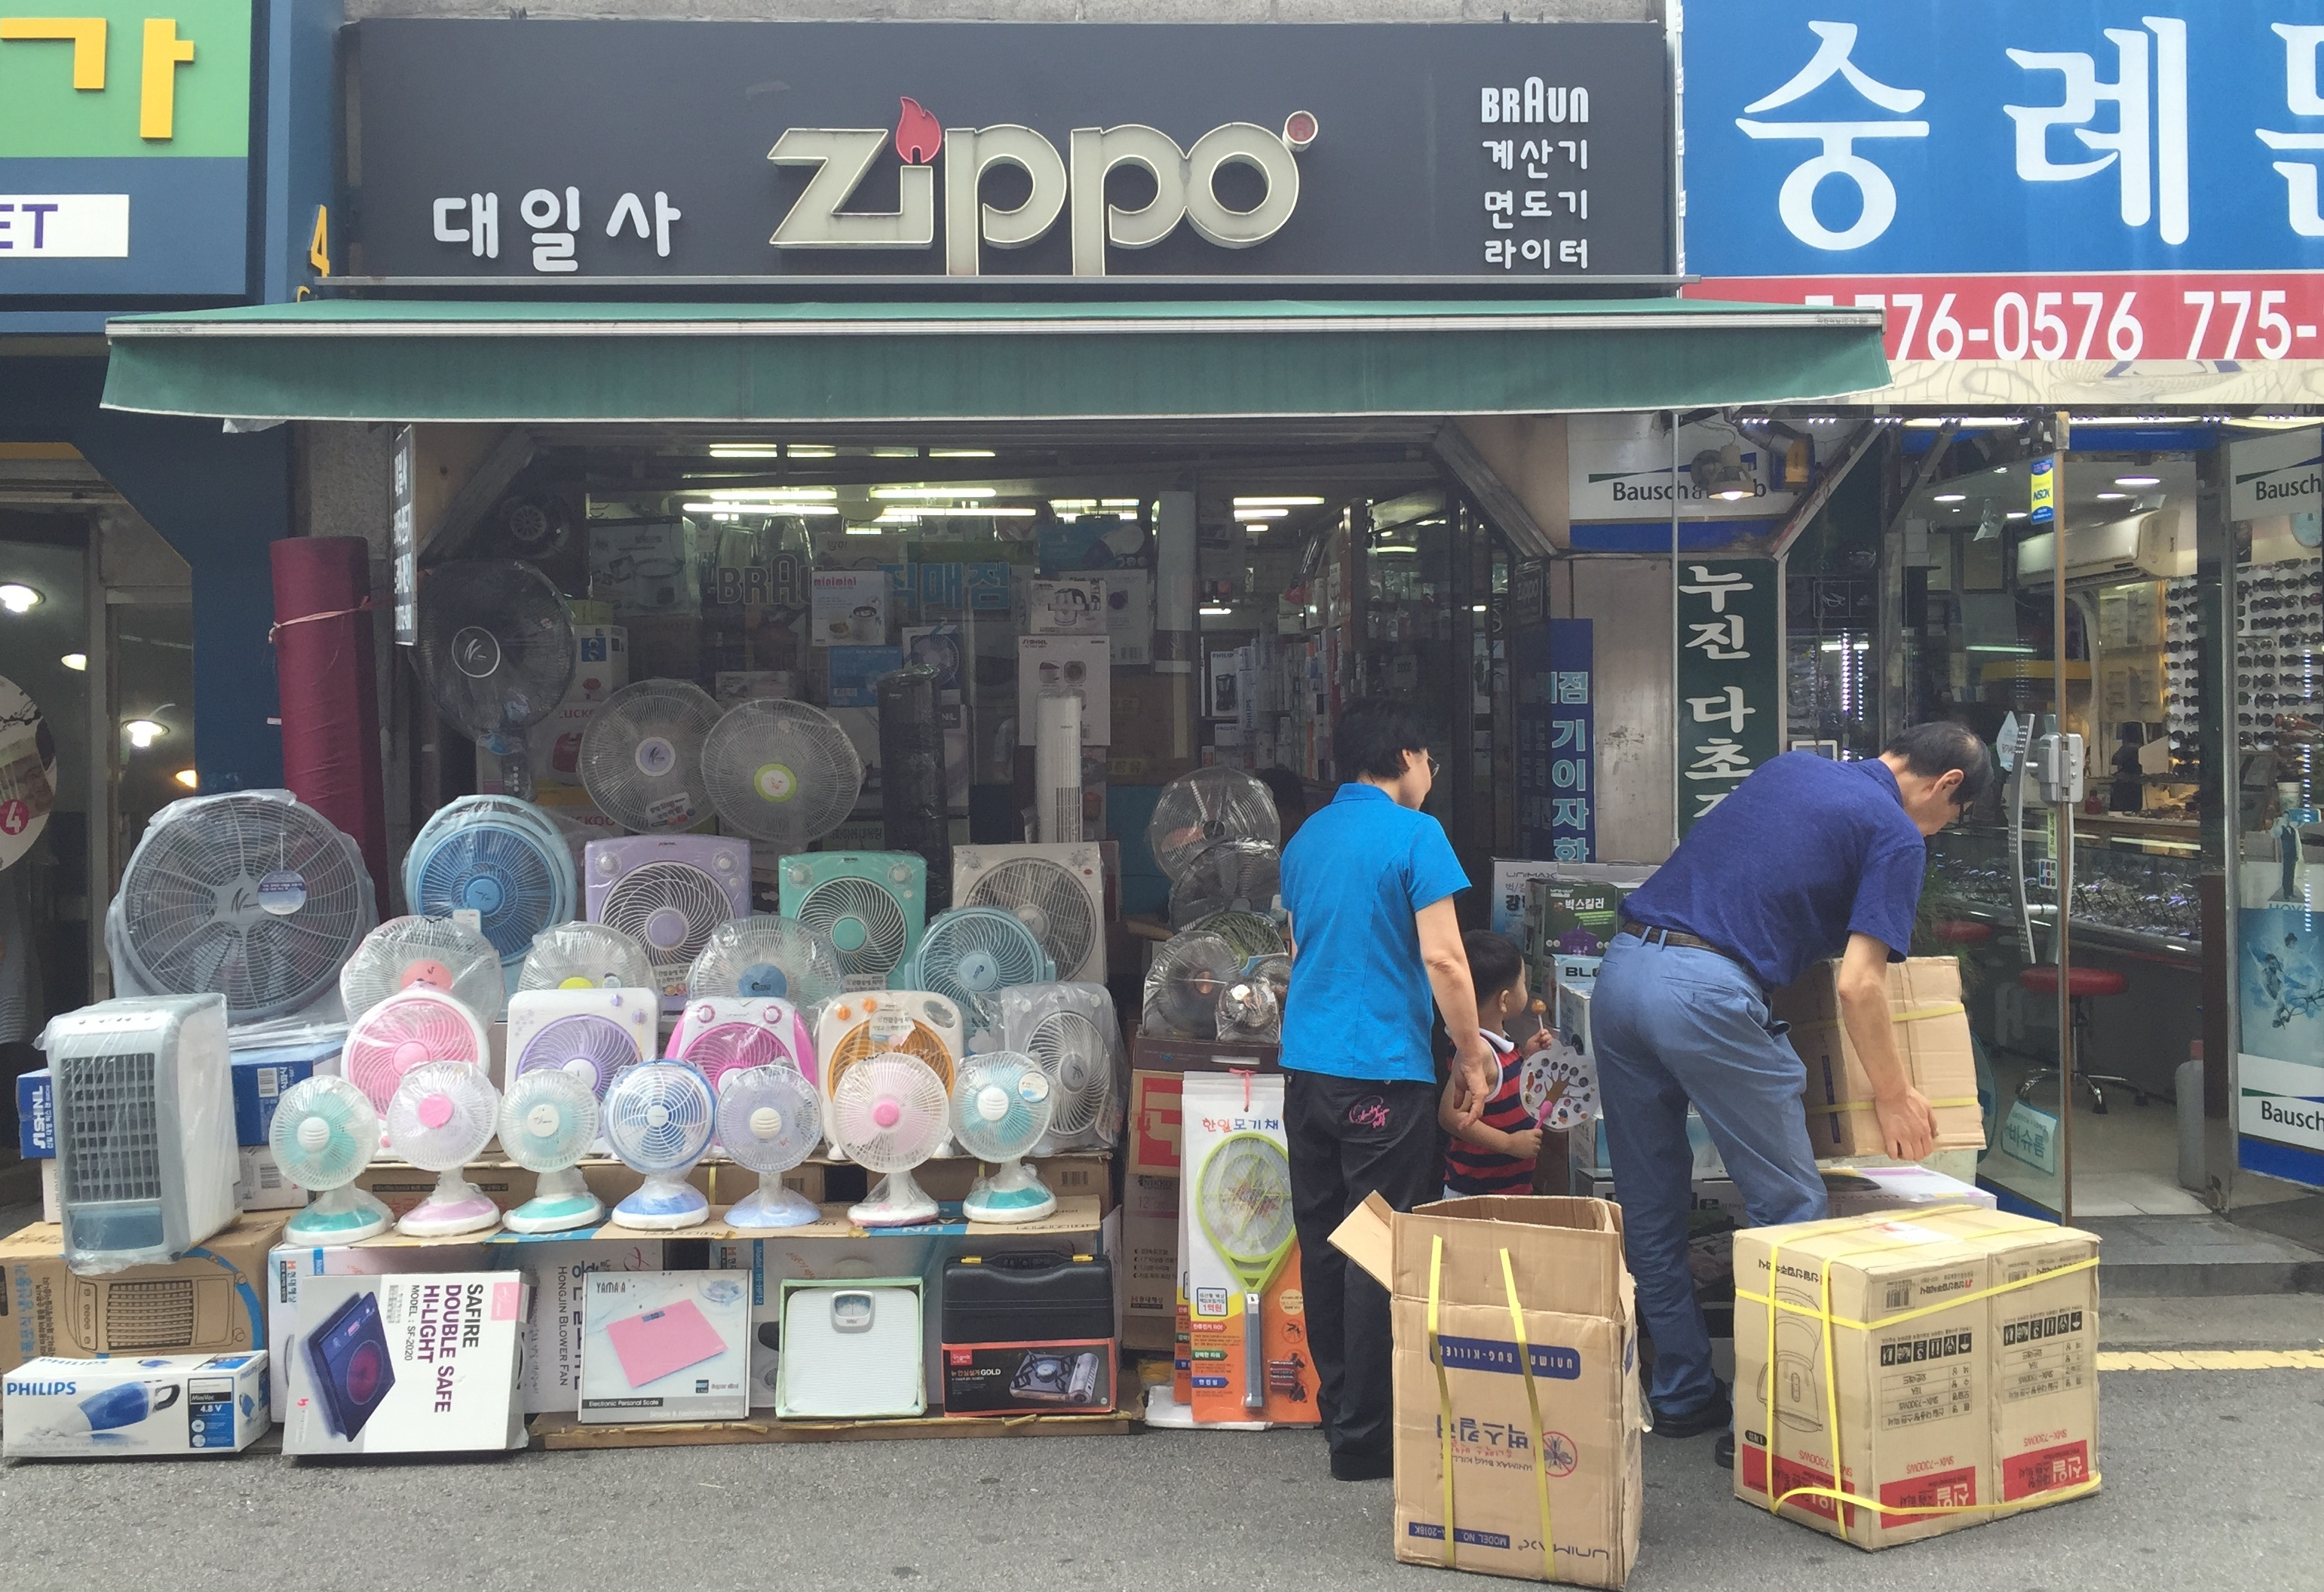 South Korea's Quirky Notions About Electric Fans